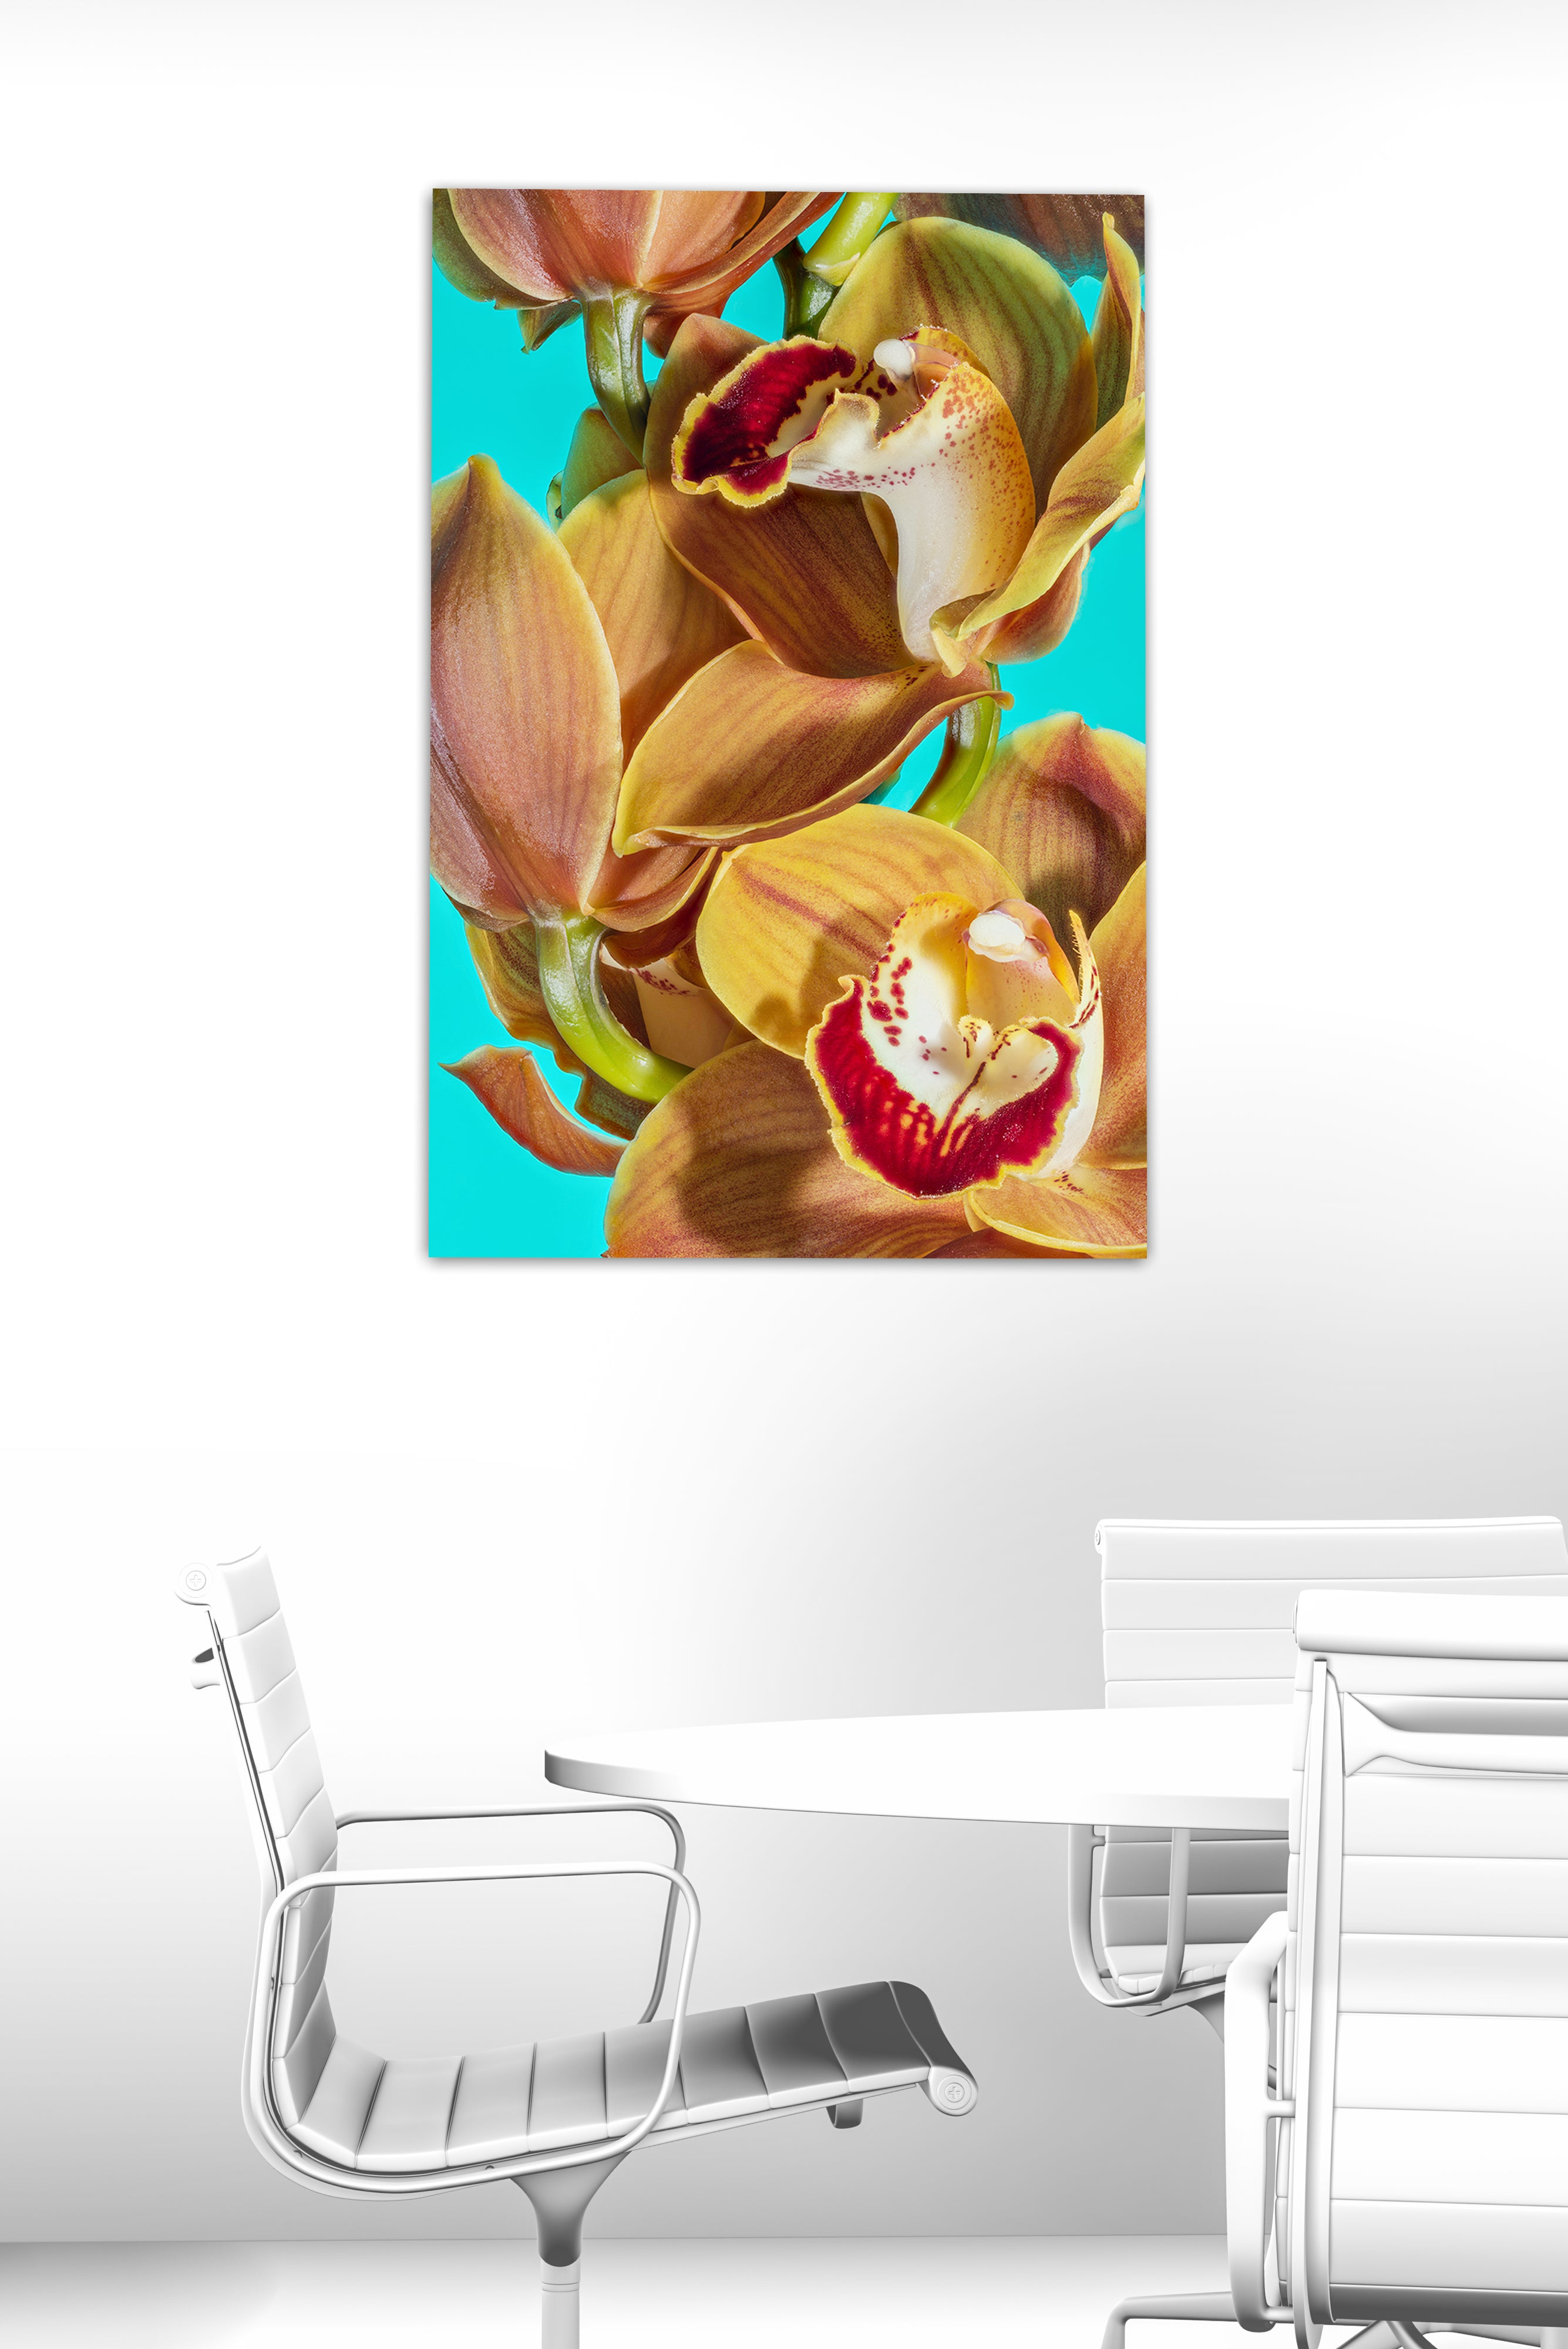 Orchid 01 spring limited edition, on aluminium personally signed, ready to hang 2019